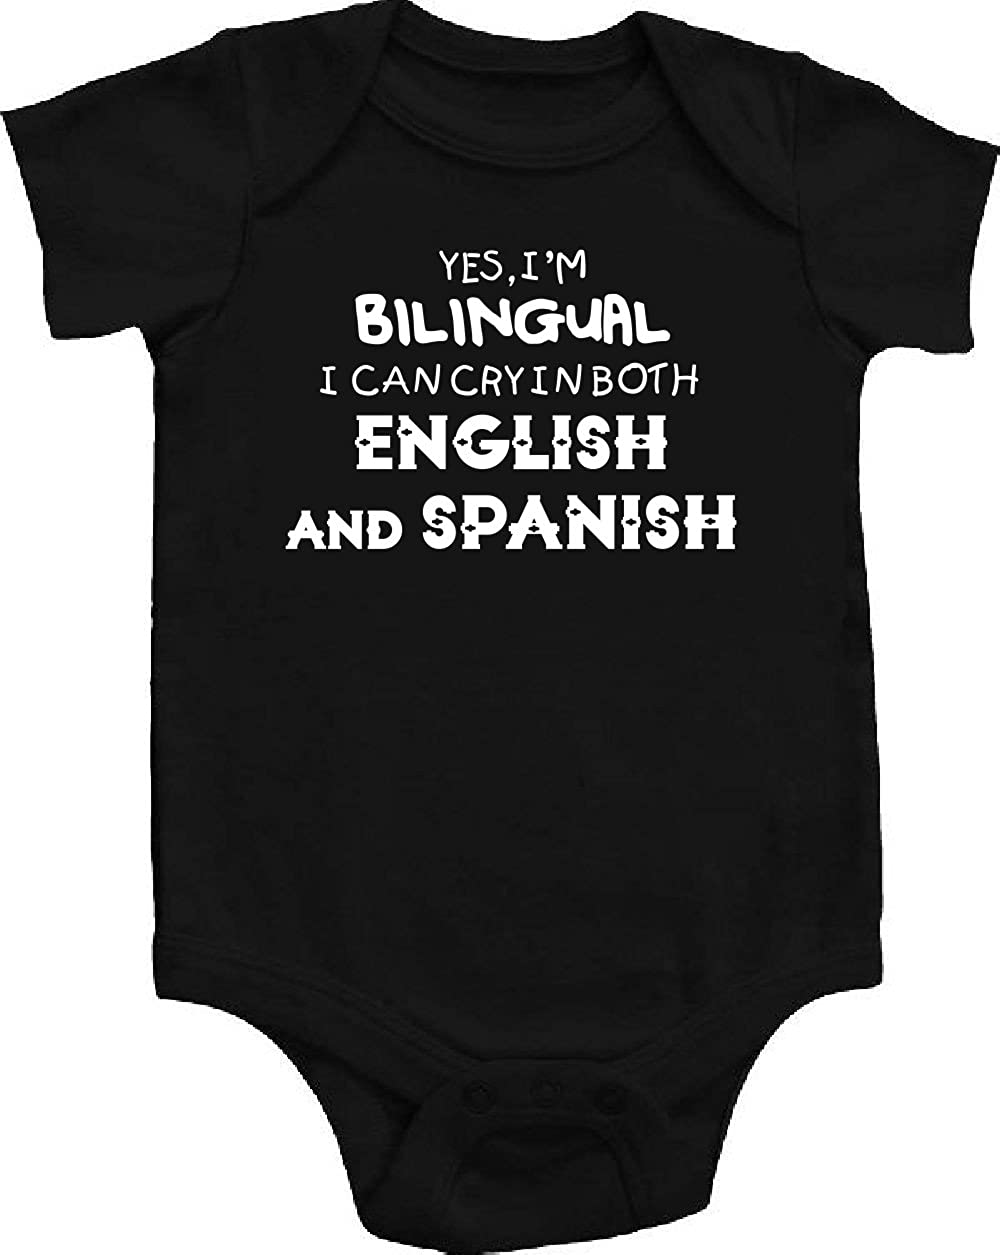 Amazon.com: Im Bilingual I Can Cry English Spanish Funny Baby ...